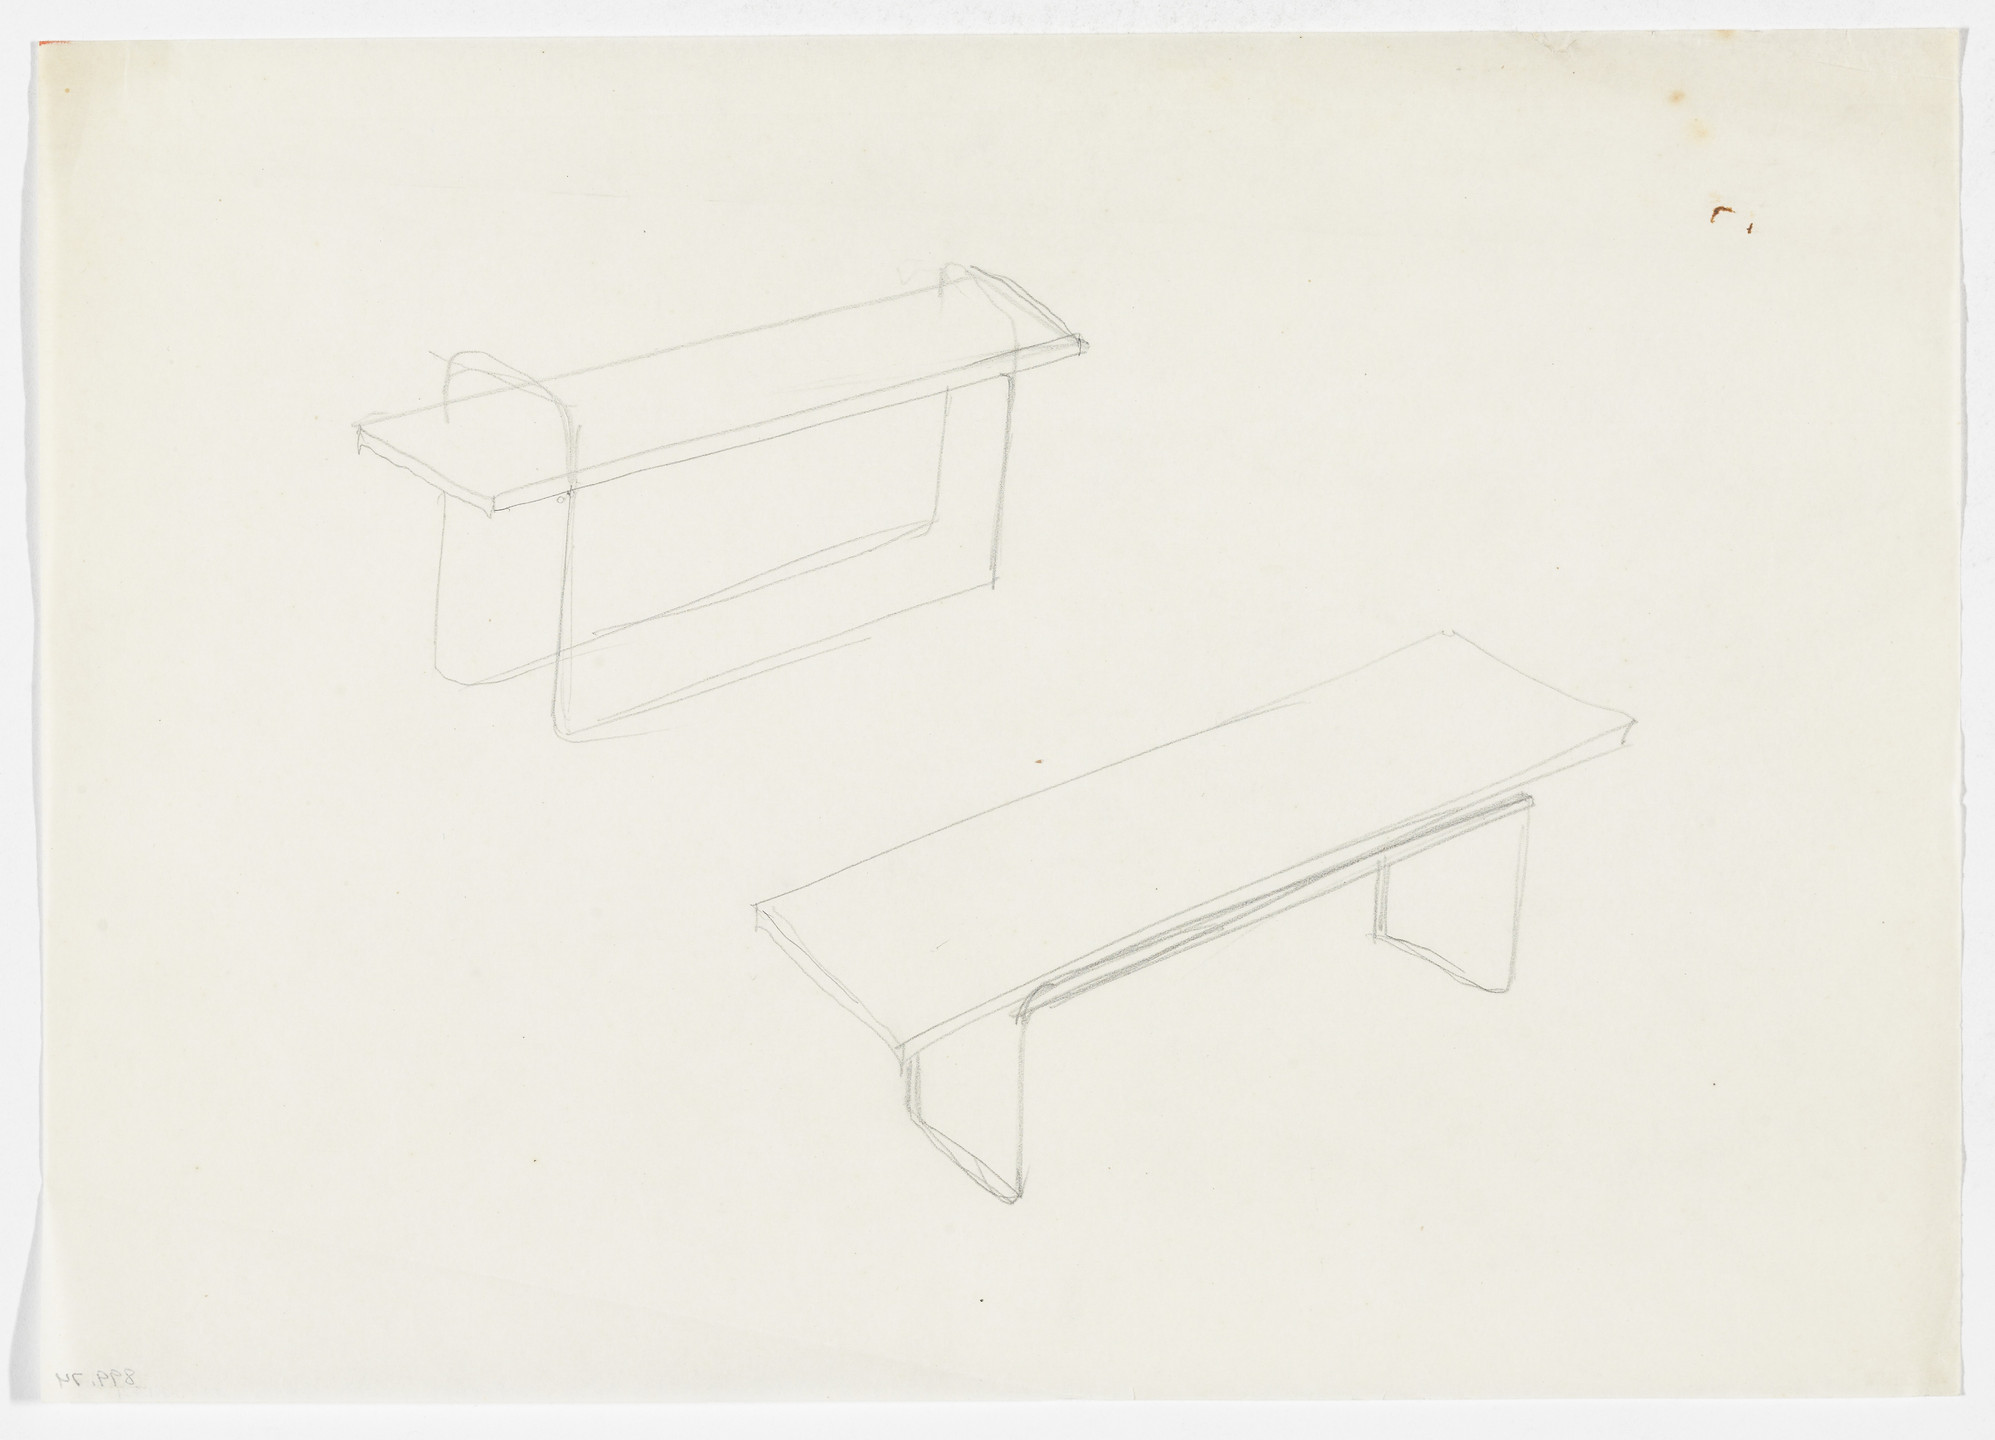 Ludwig Mies van der Rohe. Table (Perspective sketches). early 1930s